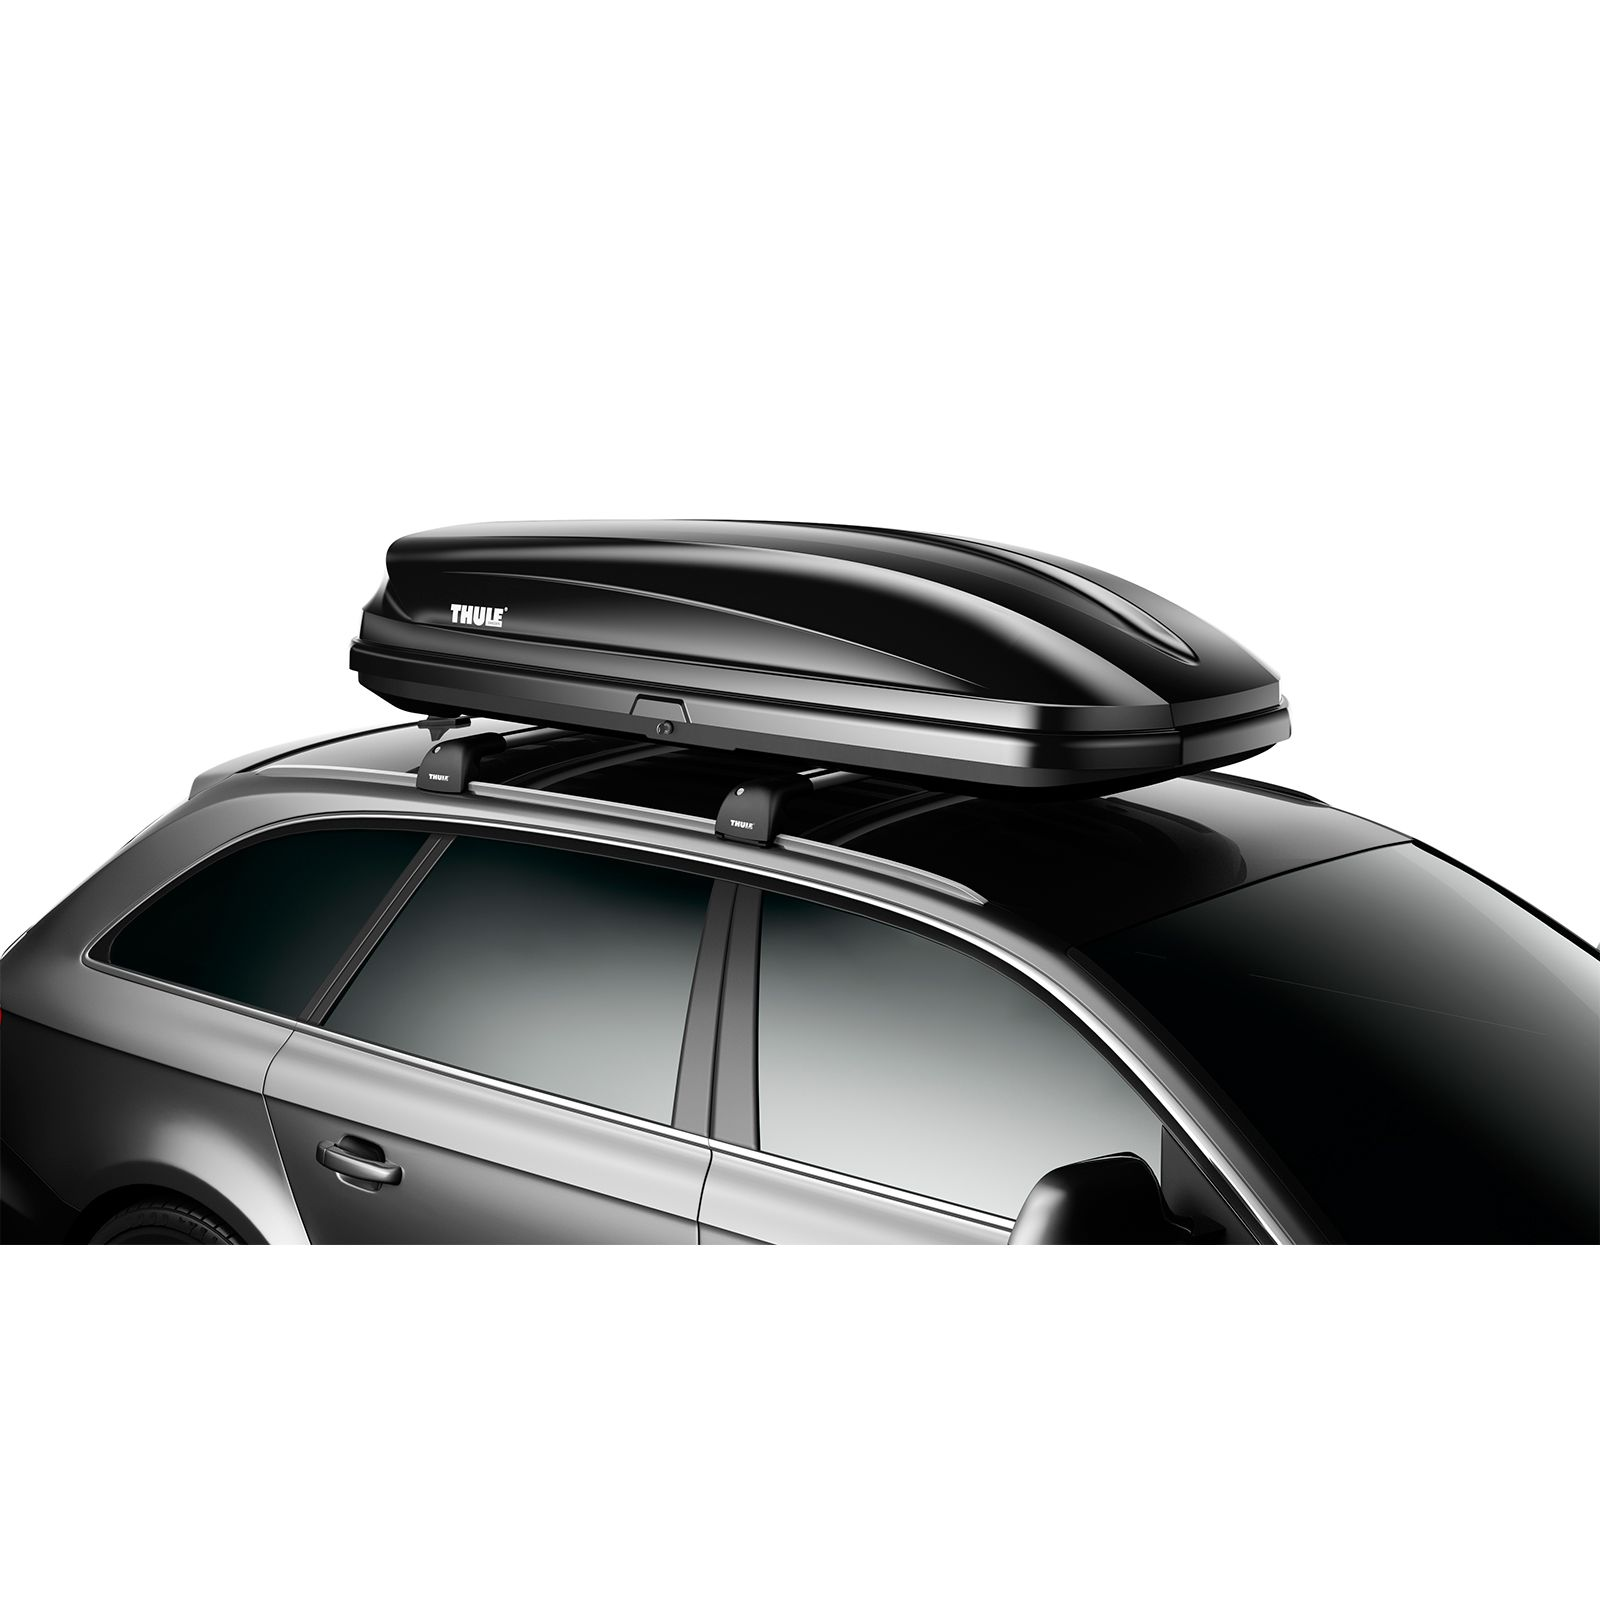 Choose This Thule Car Top Carrier To Help You Enjoy Hands Free